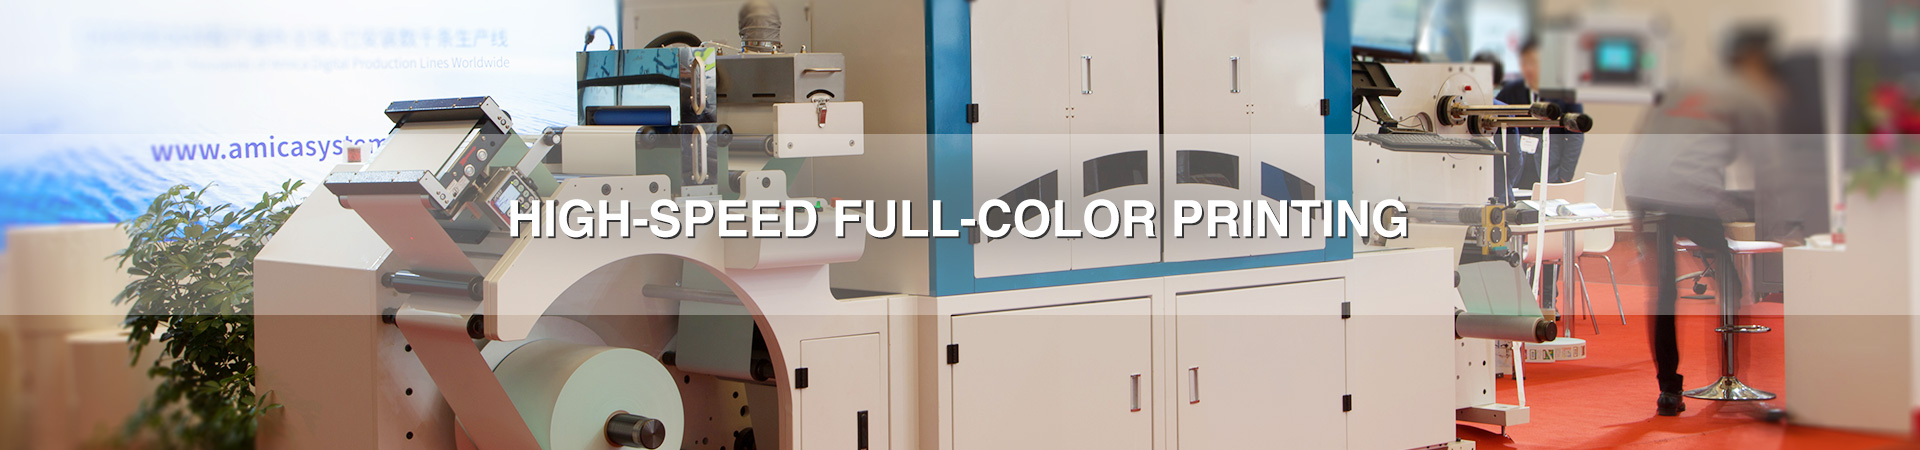 High-speed Full-color Printing